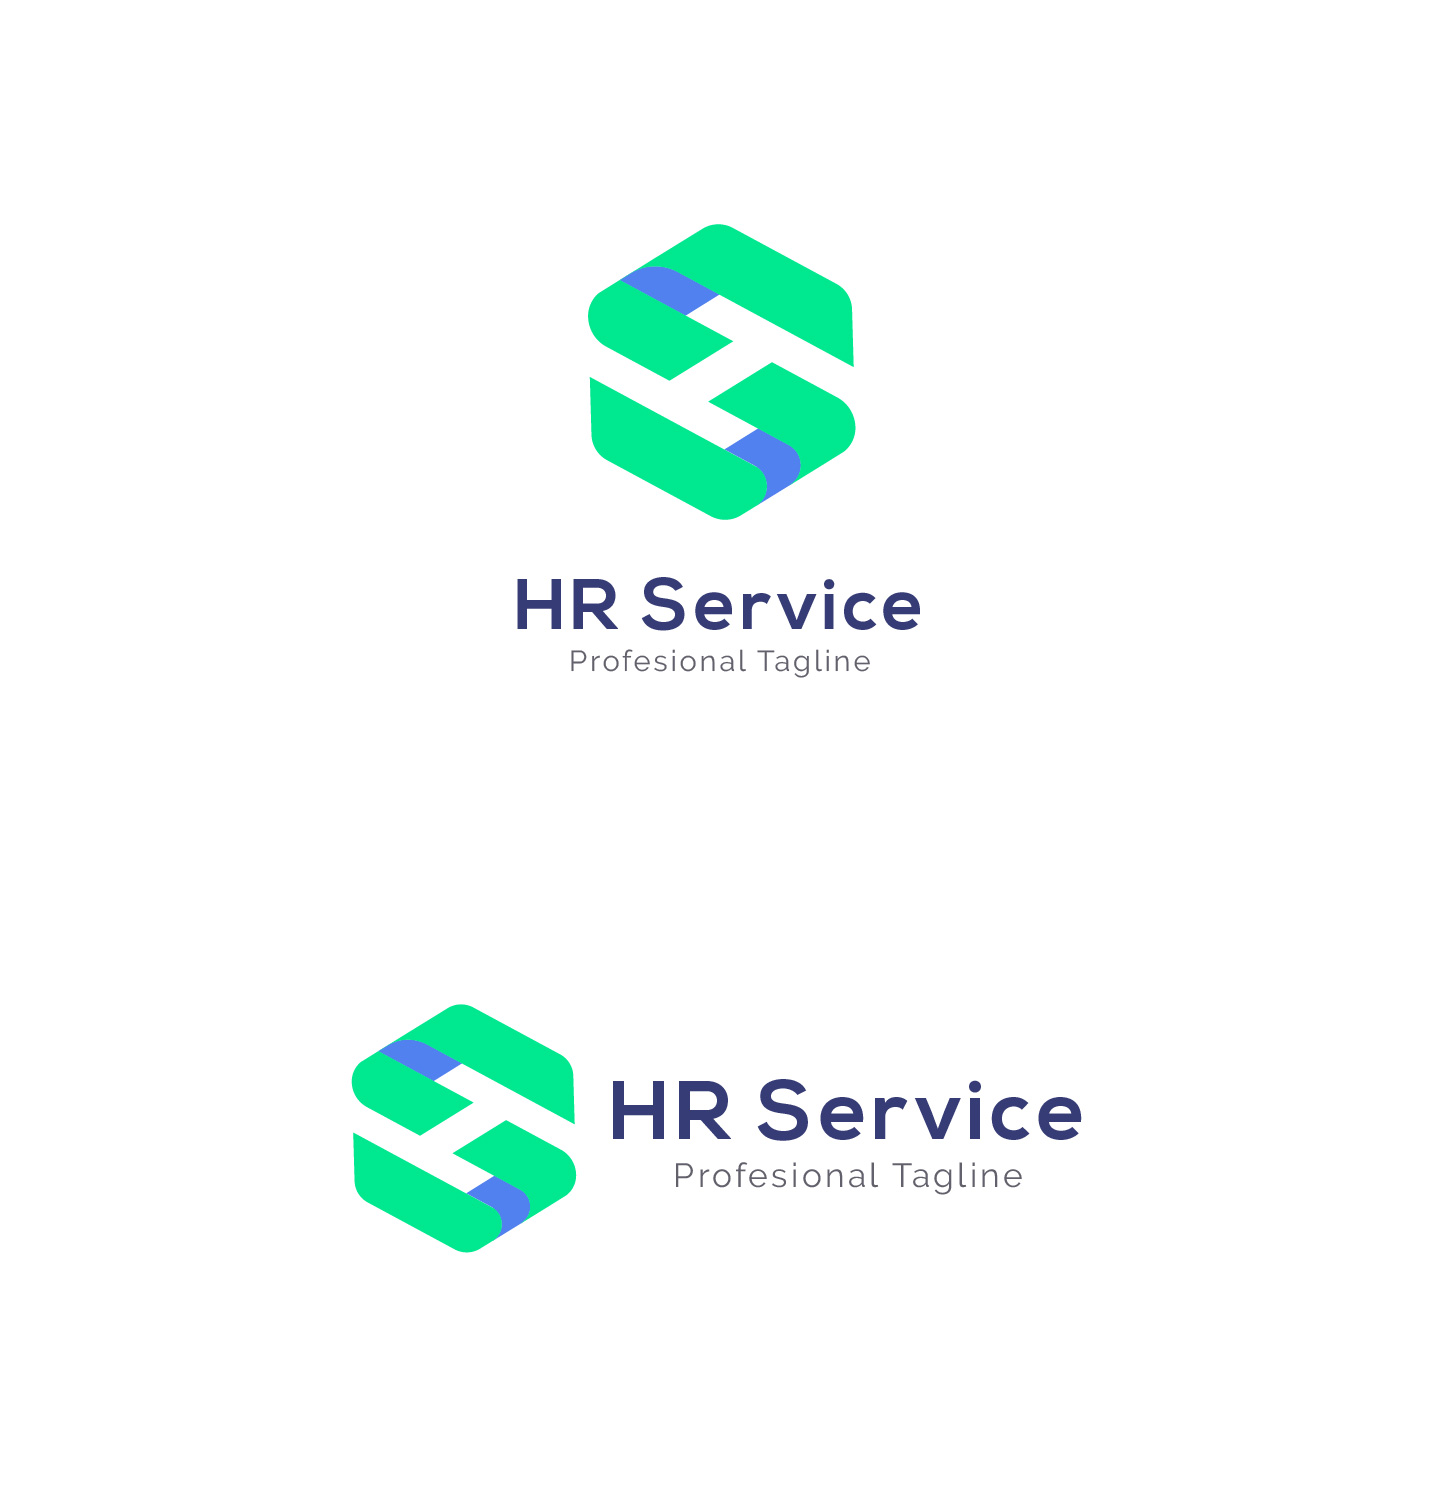 HR Service - H S Letter Logo example image 6